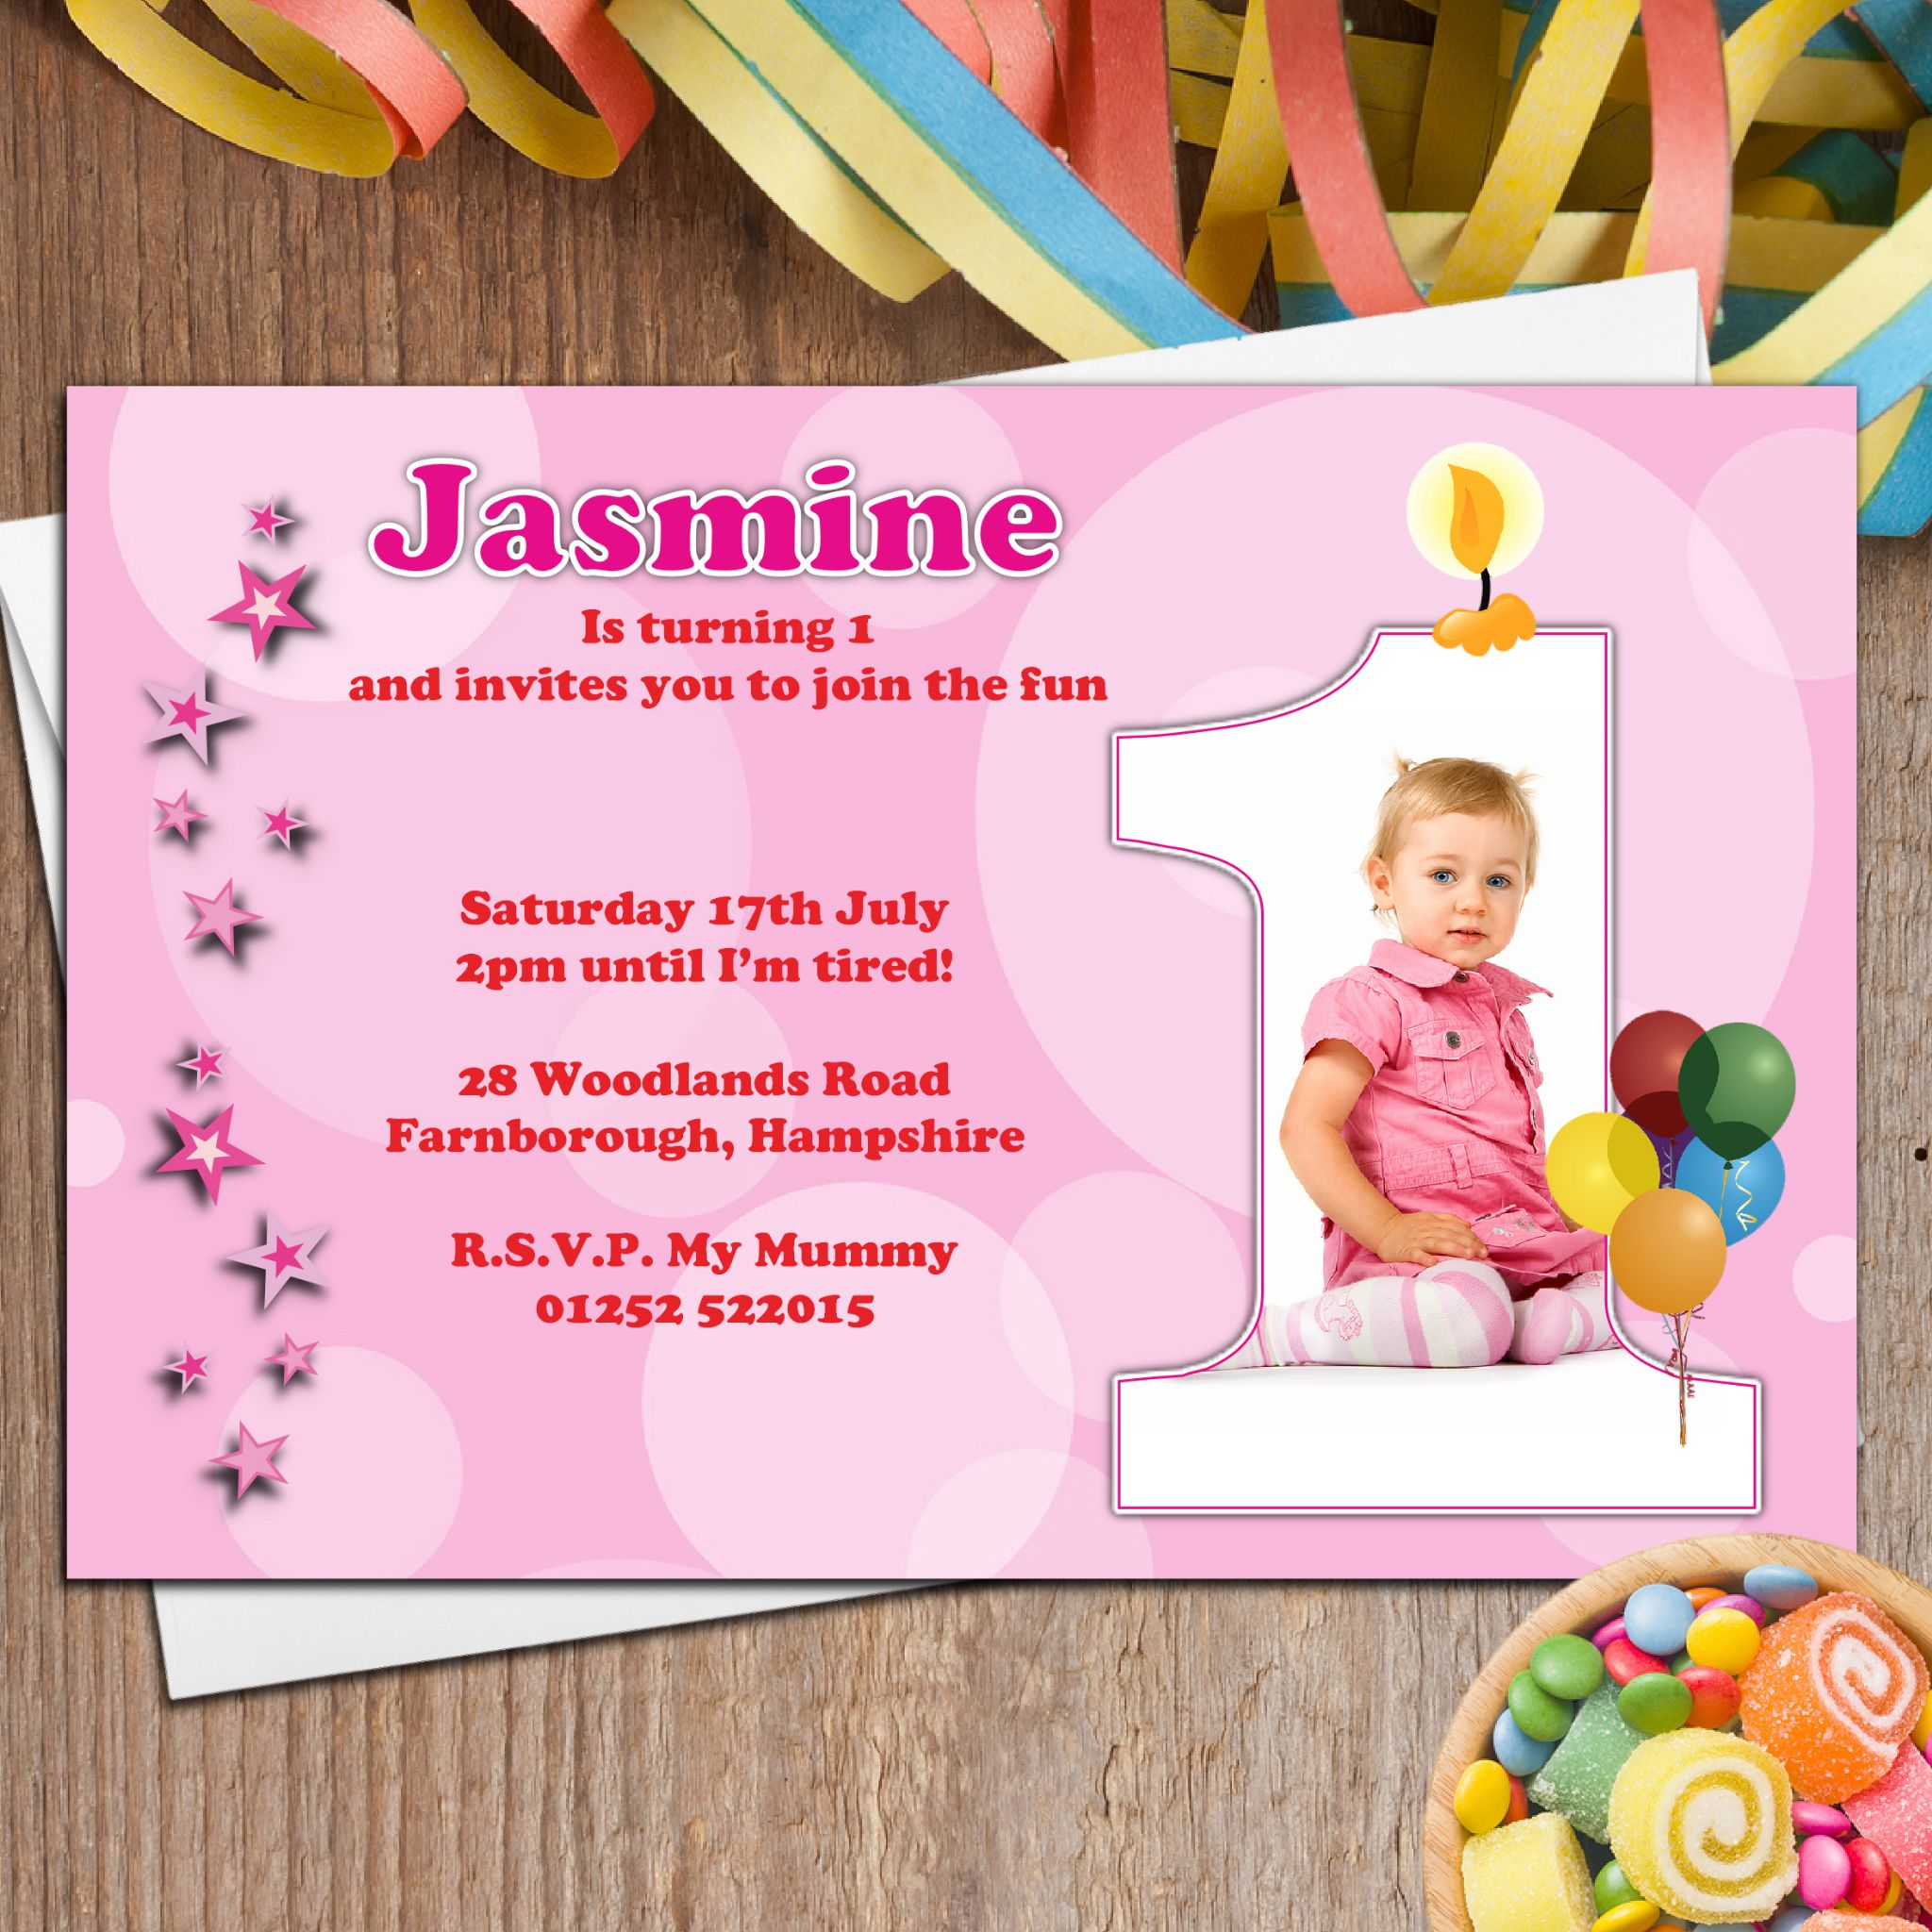 birthday card wordings for 1st birthday ; words-for-first-birthday-invitation-cards-inspirational-first-birthday-card-wording-%25E2%2580%2593-gangcraft-of-words-for-first-birthday-invitation-cards